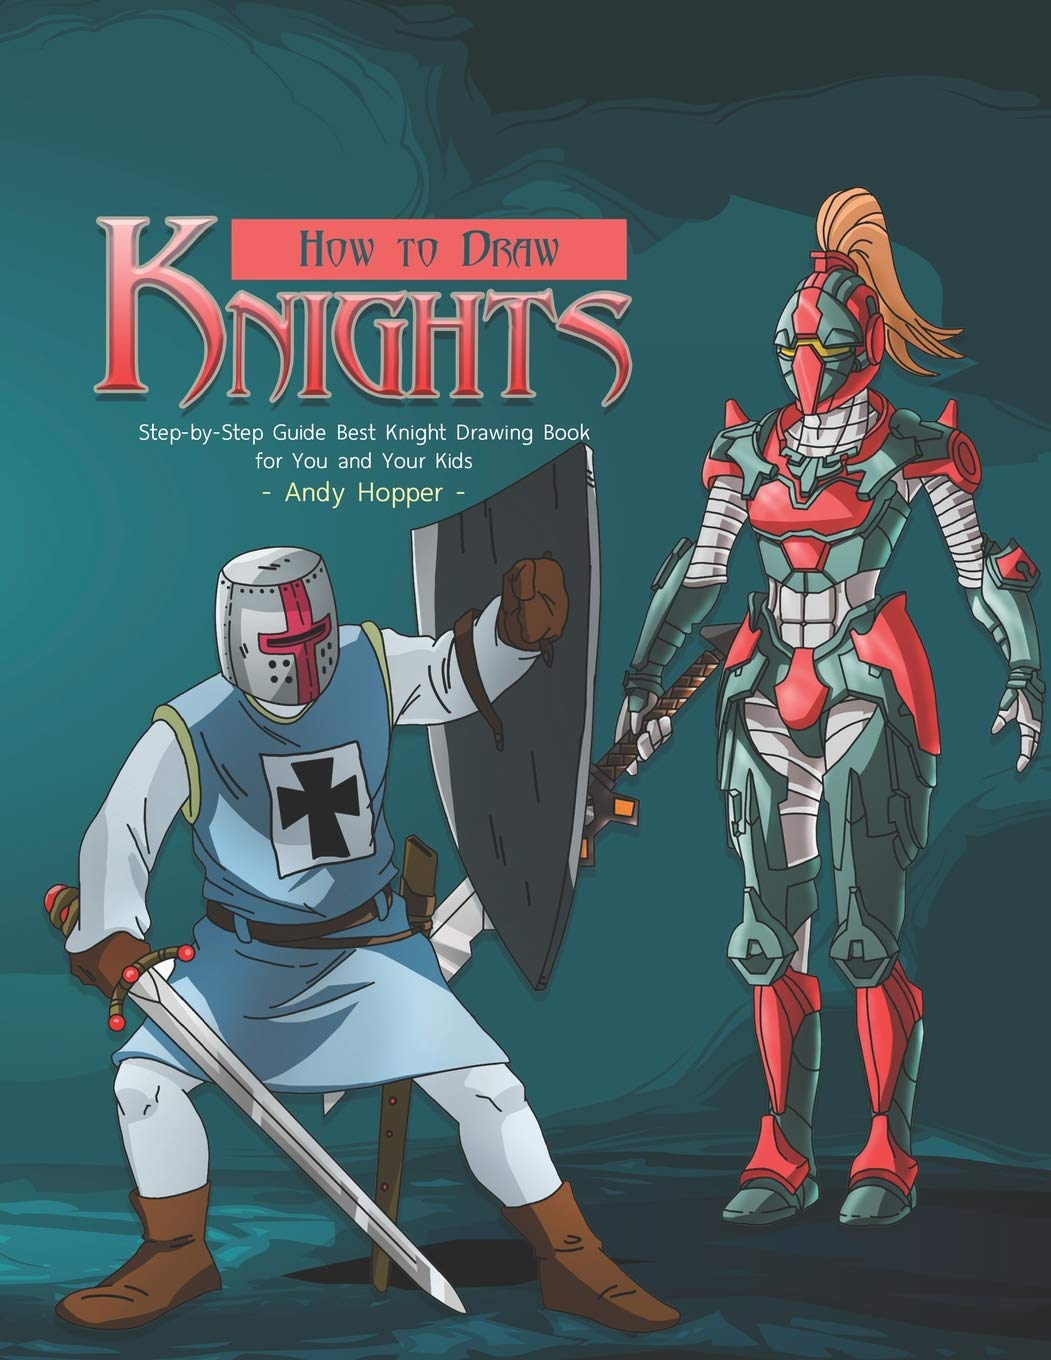 How To Draw Knights Step By Step Guide Best Knight Drawing Book For You And Your Kids Hopper Andy 9781070487670 Amazon Com Books